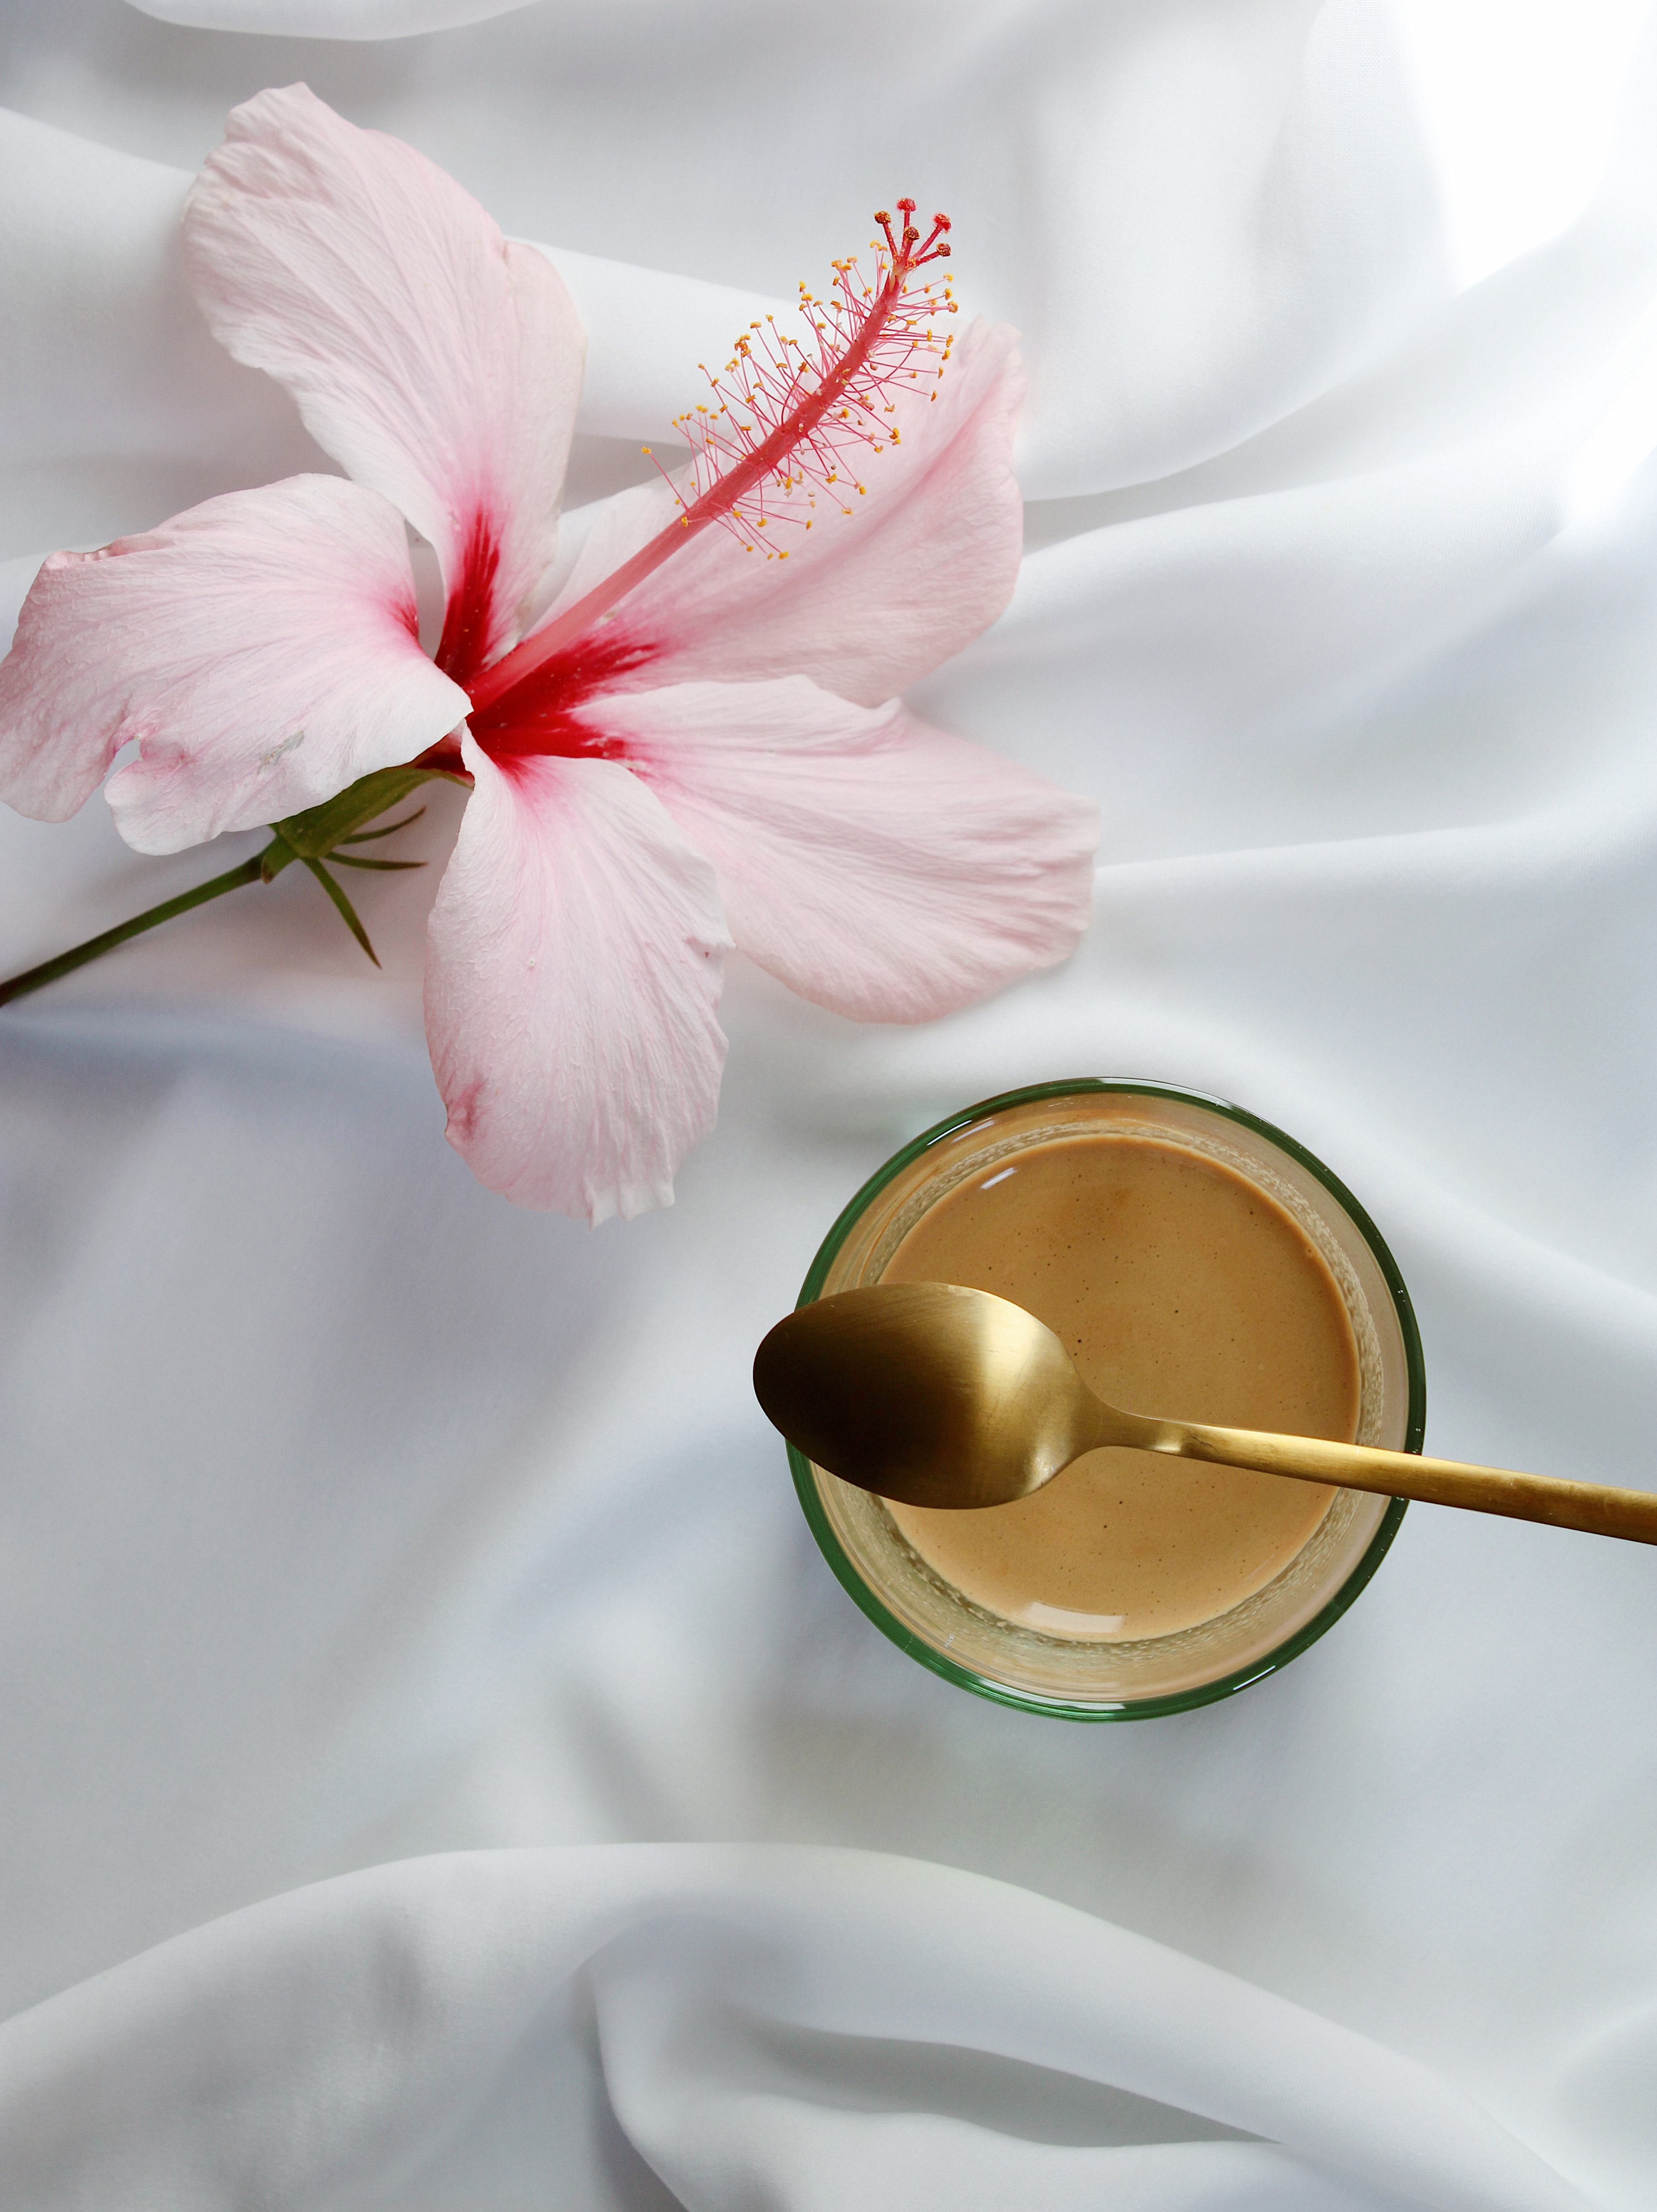 120242 download wallpaper Food, Coffee, Flower, Cup, Cloth, Spoon screensavers and pictures for free